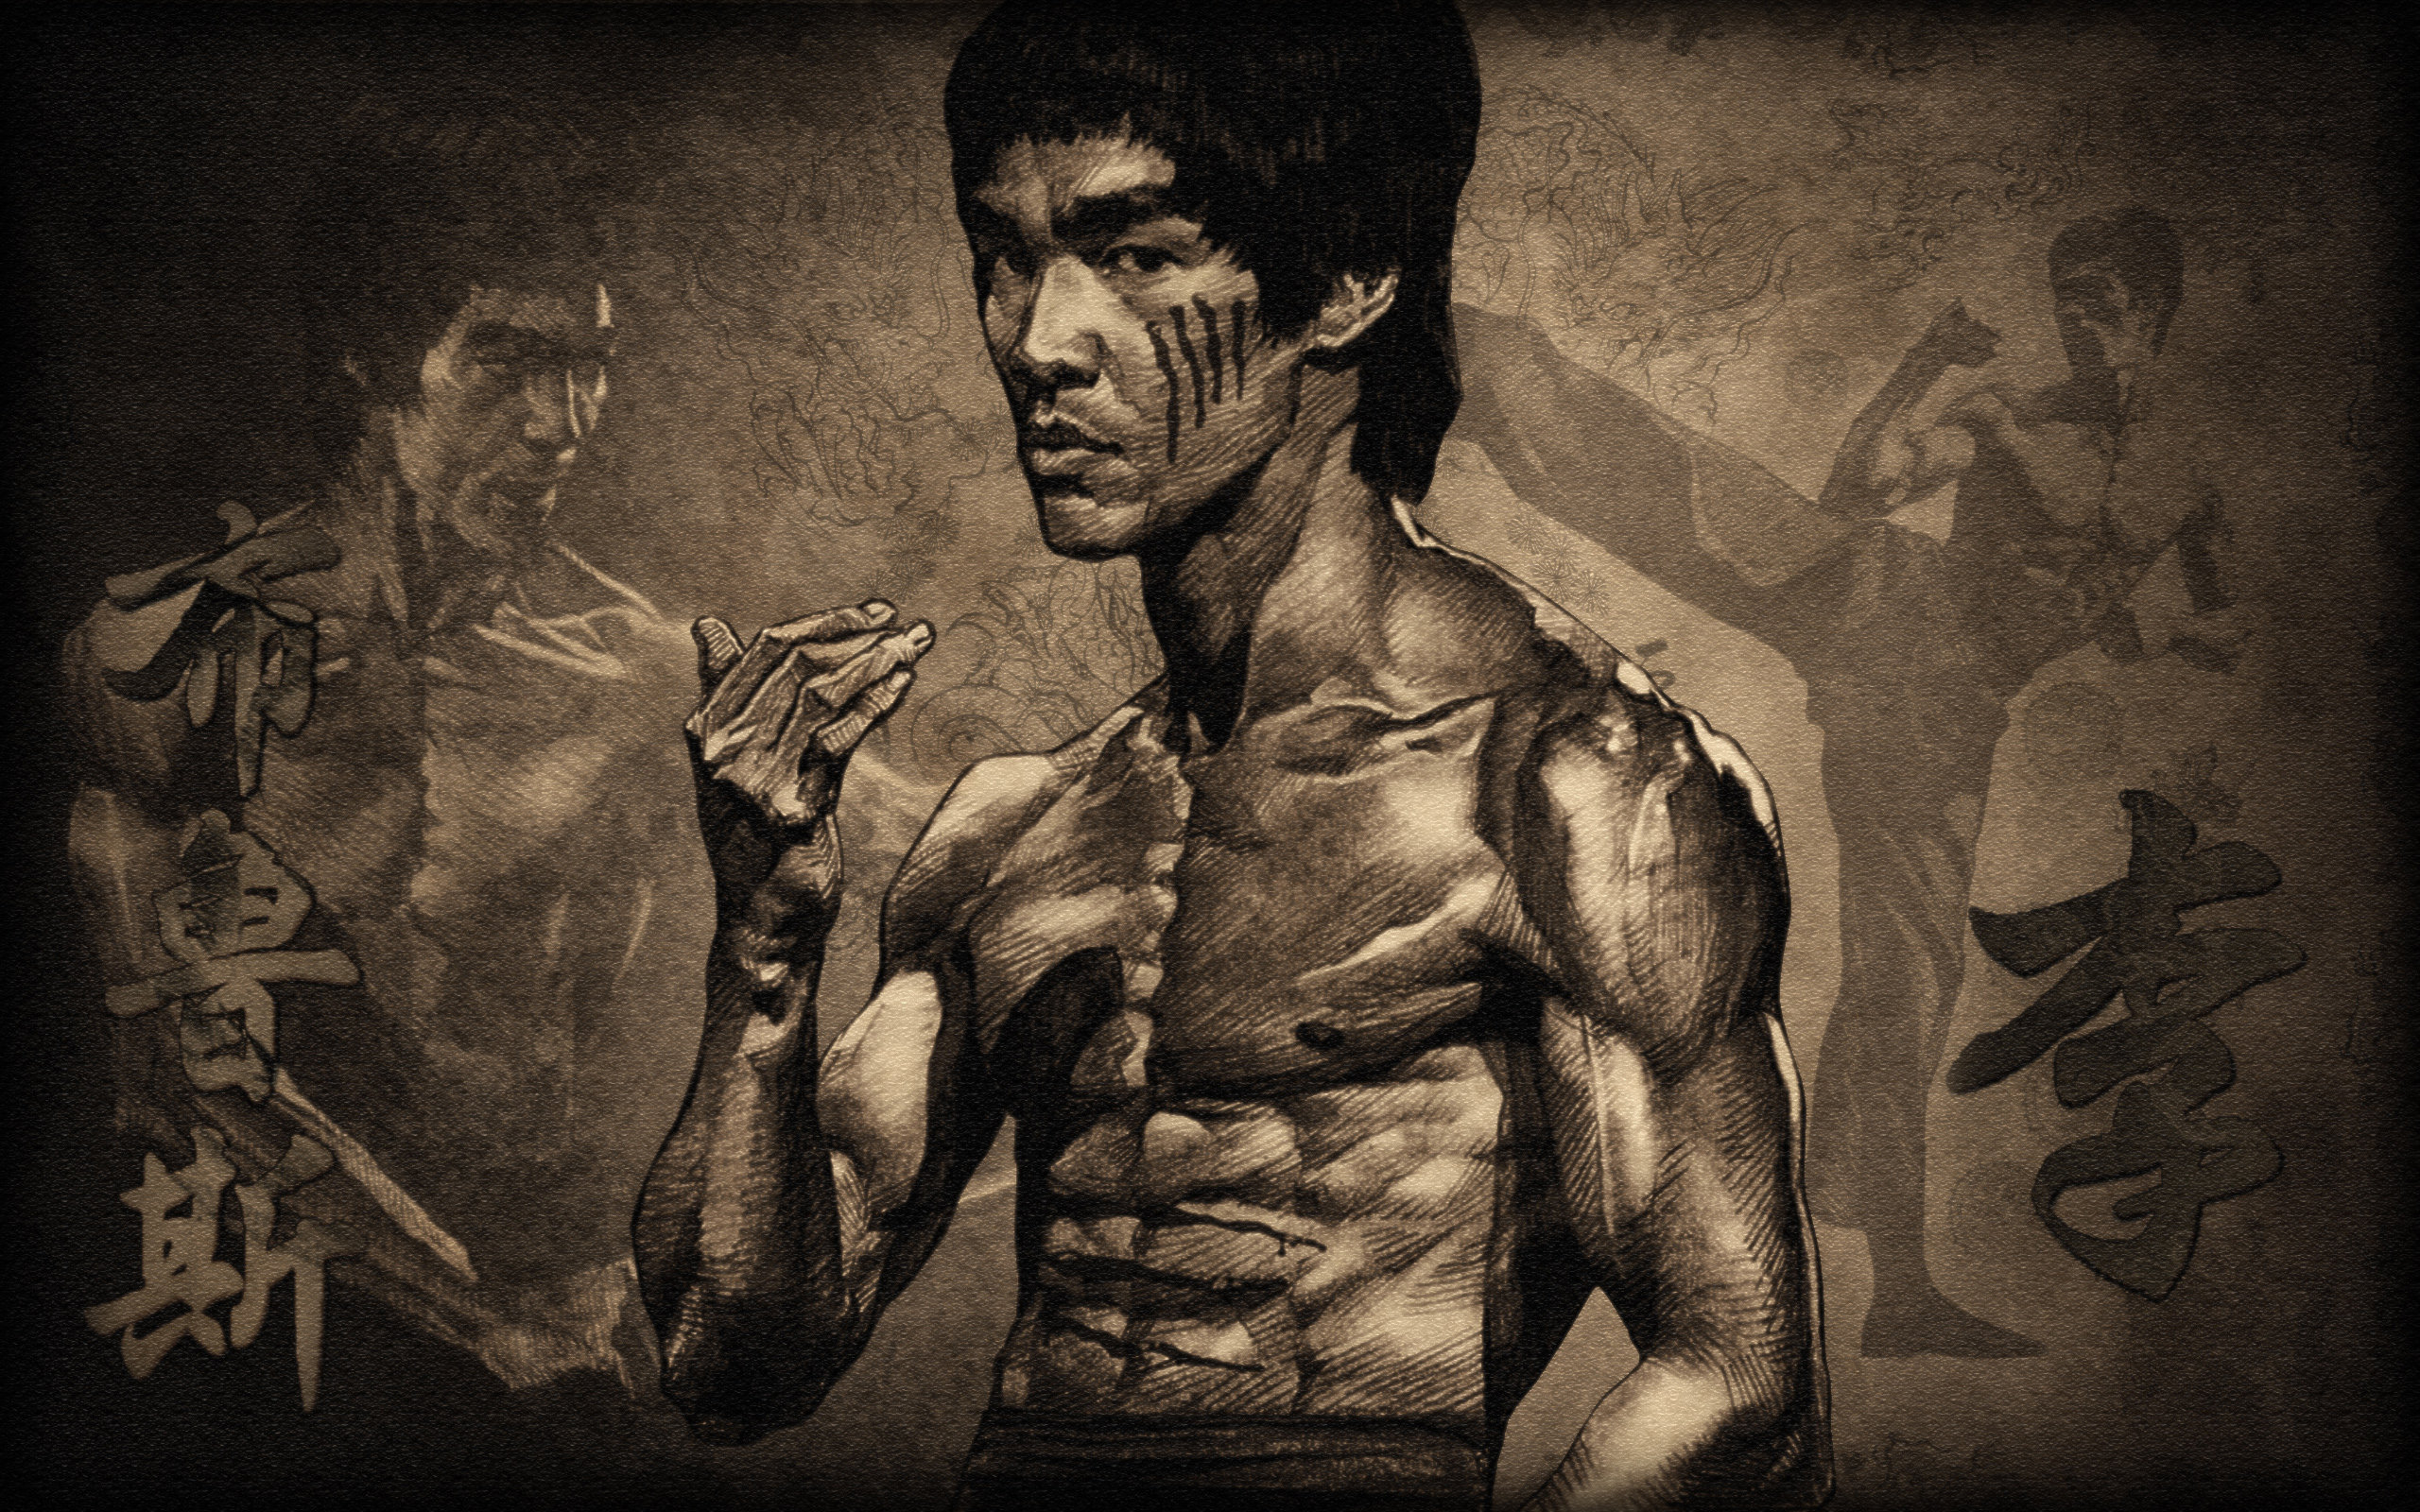 2560x1600 bruce lee desktop - photo #14